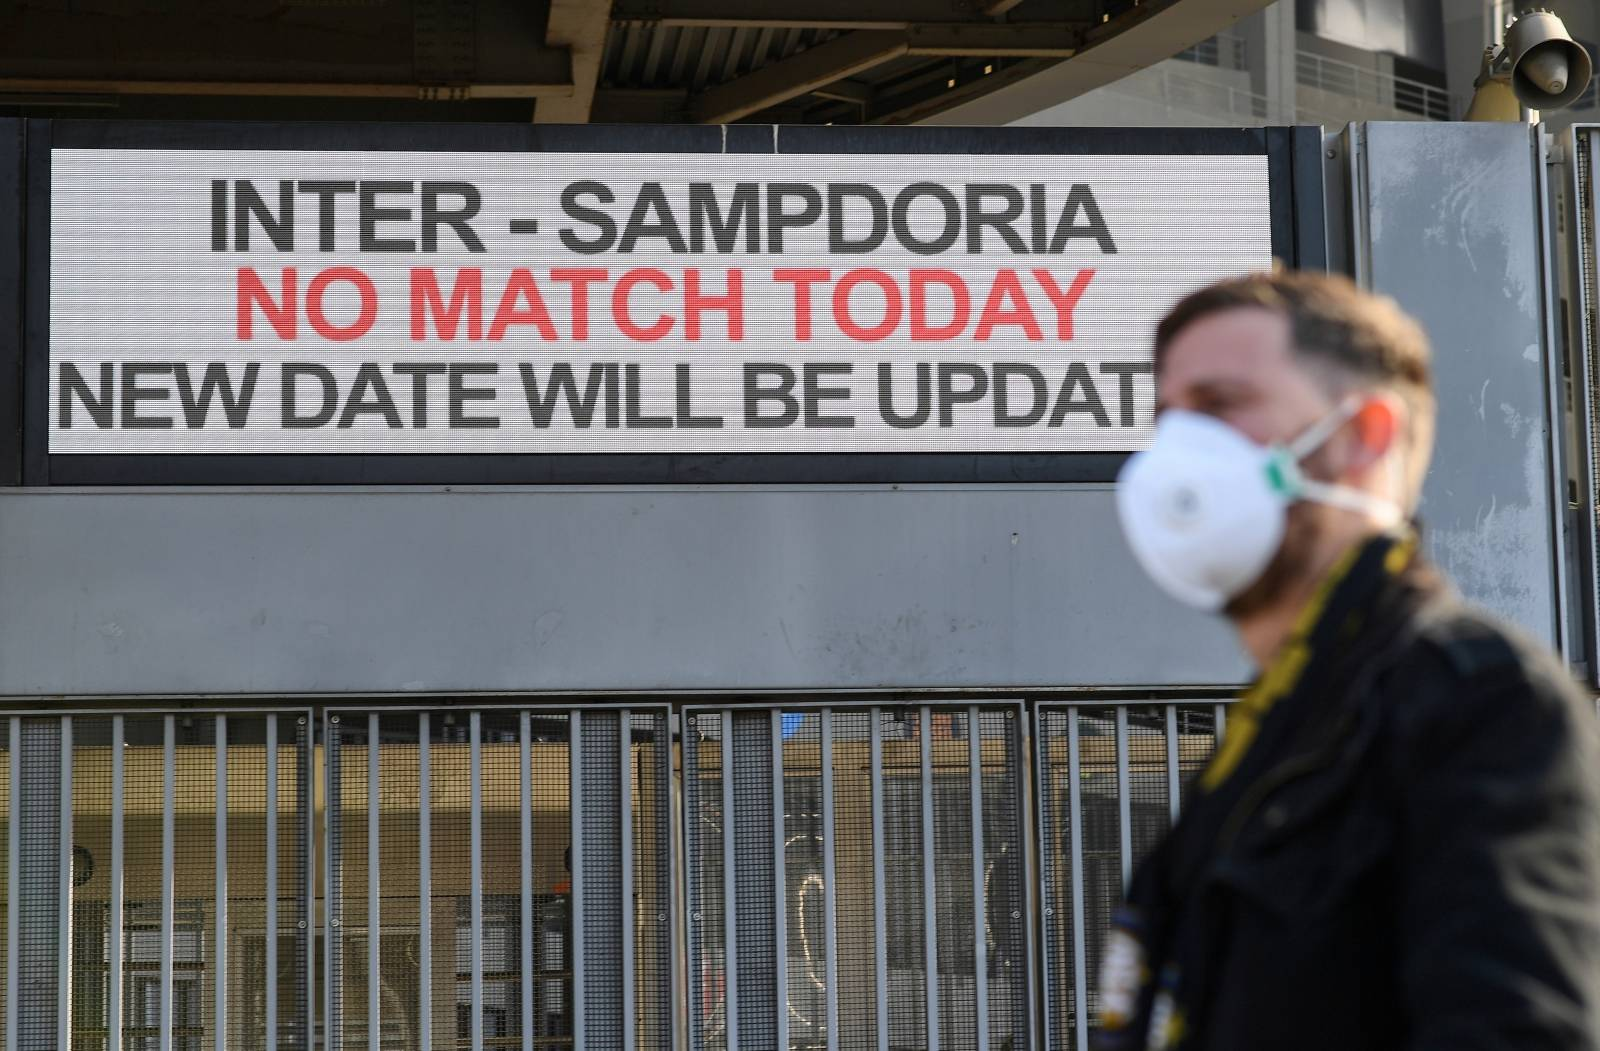 A man wearing a face mask stands outside the San Siro stadium after the Inter Milan v Sampdoria Serie A match was cancelled due to an outbreak of the coronavirus in Lombardy and Veneto, in Milan